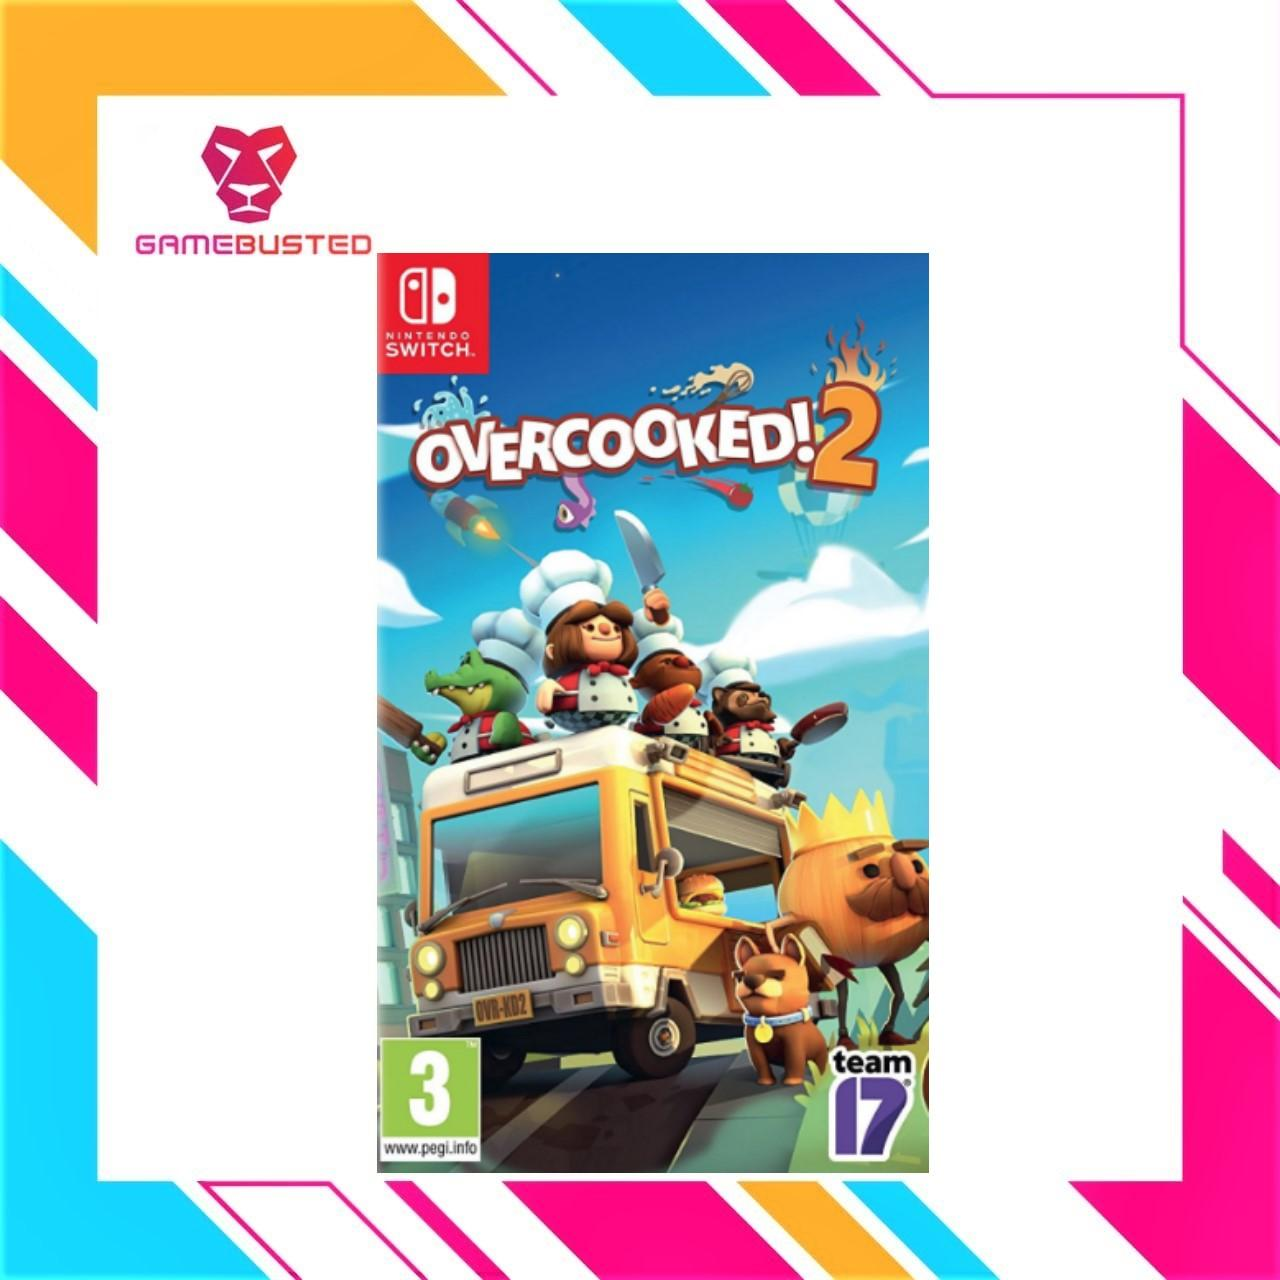 Nintendo Switch Overcooked 2 By Game Busted.